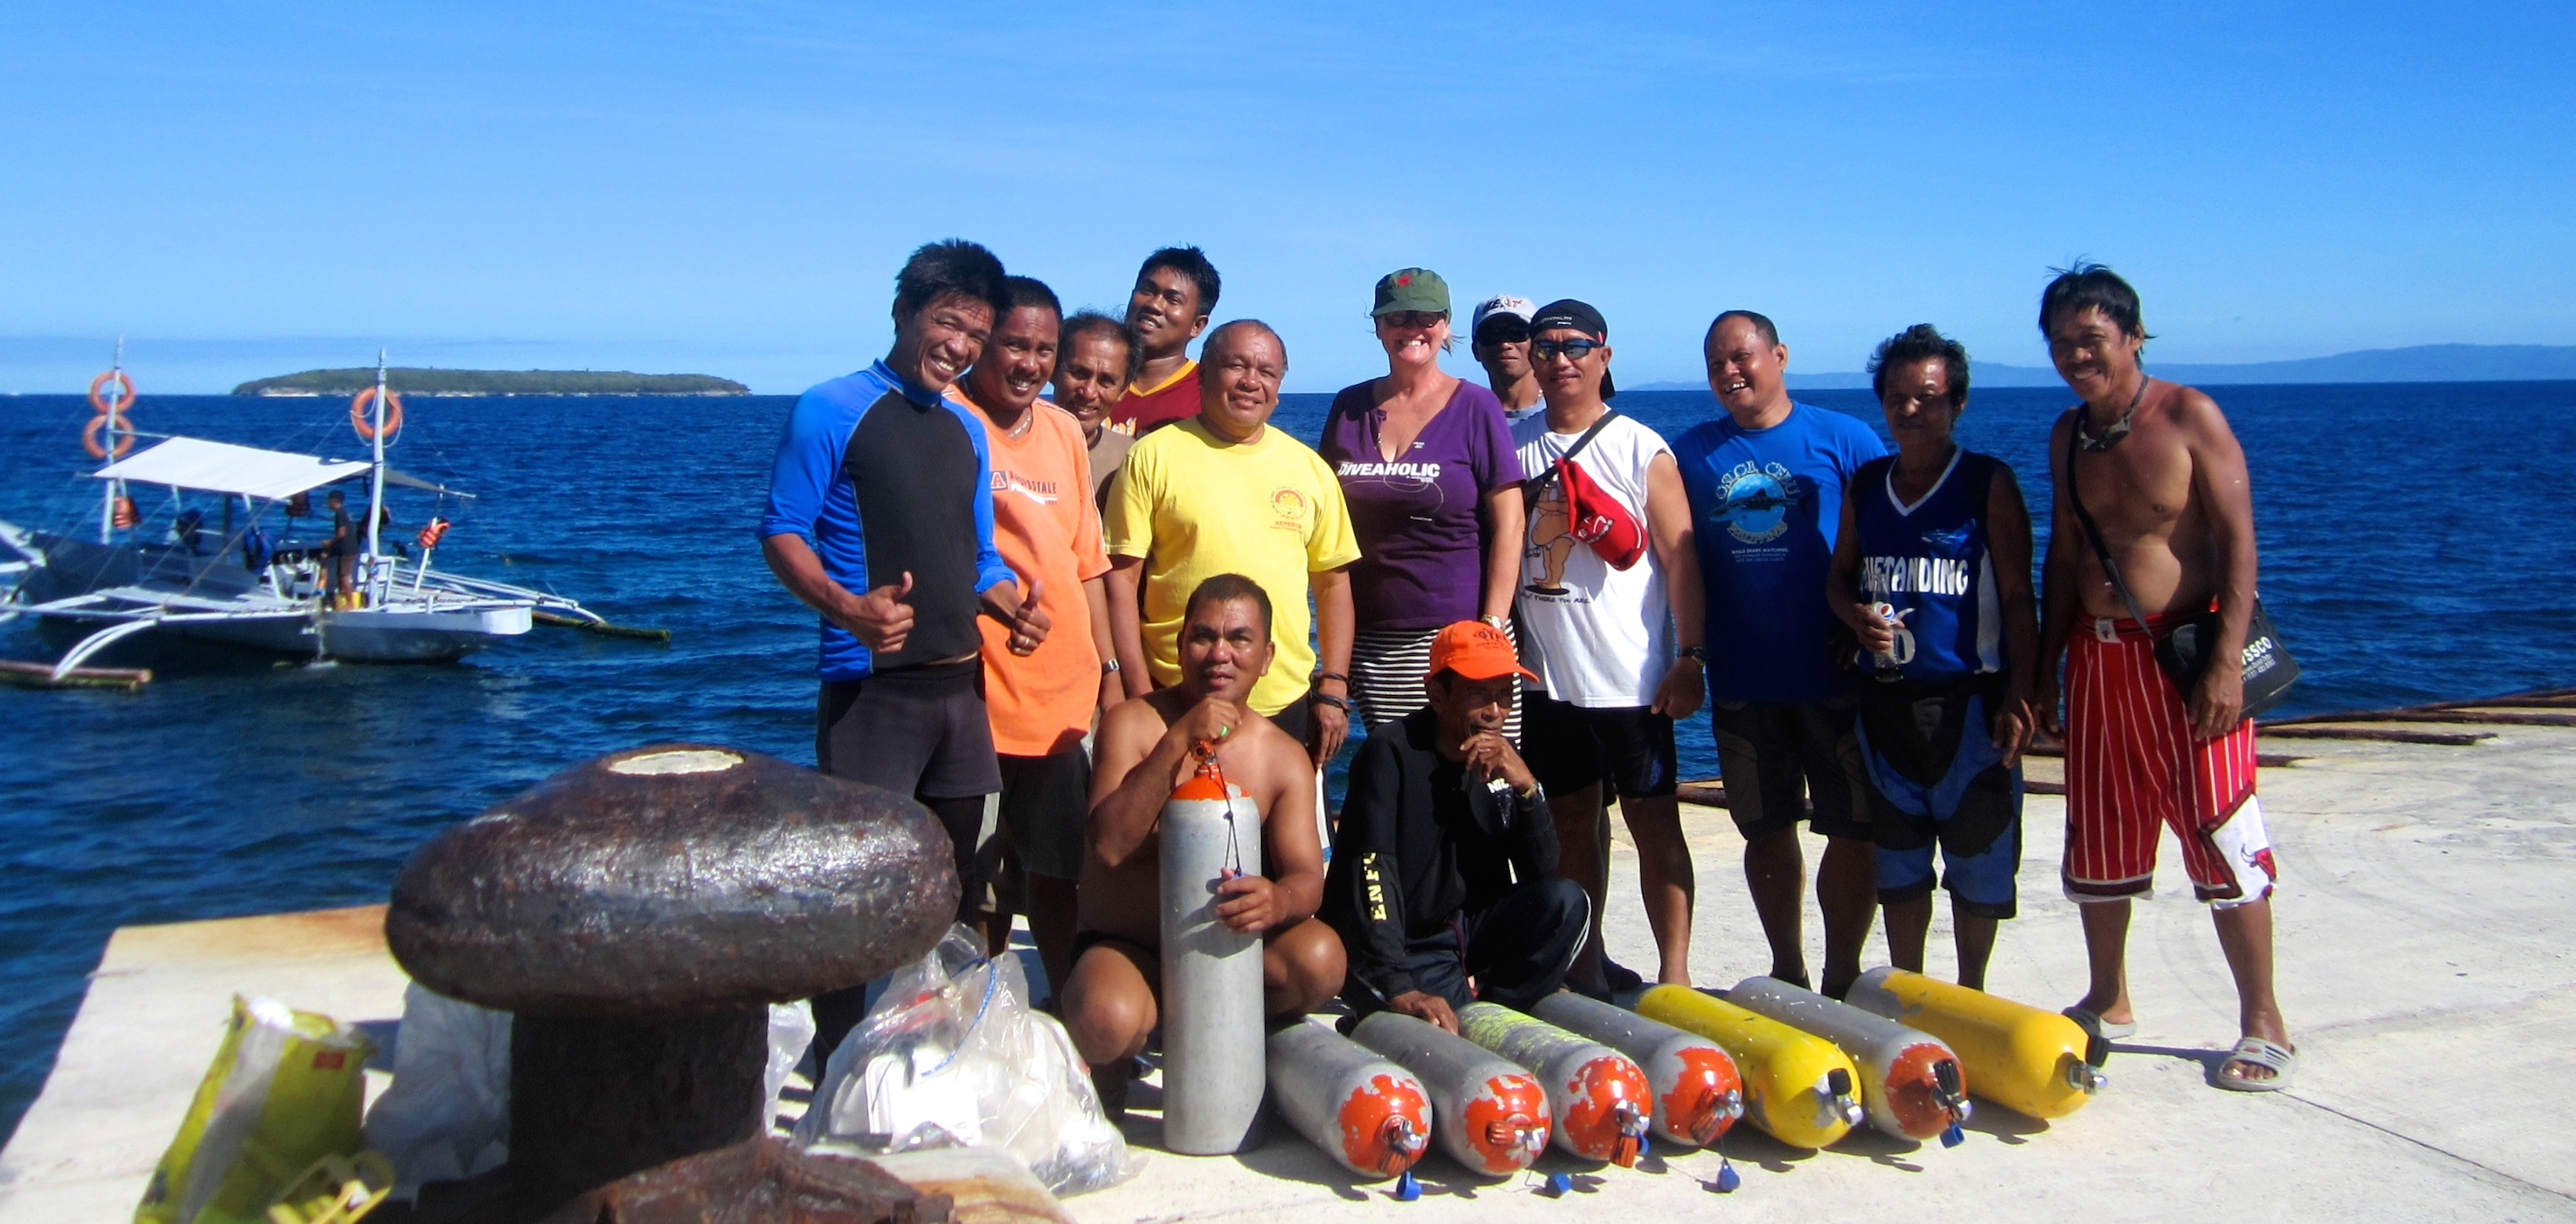 With the Bantay Dagat, or Sea Wardens of Oslob, preparing to place marker buoys in the marine sanctuary of Sumilon Island, Oslob, the Philippines. February 2016.